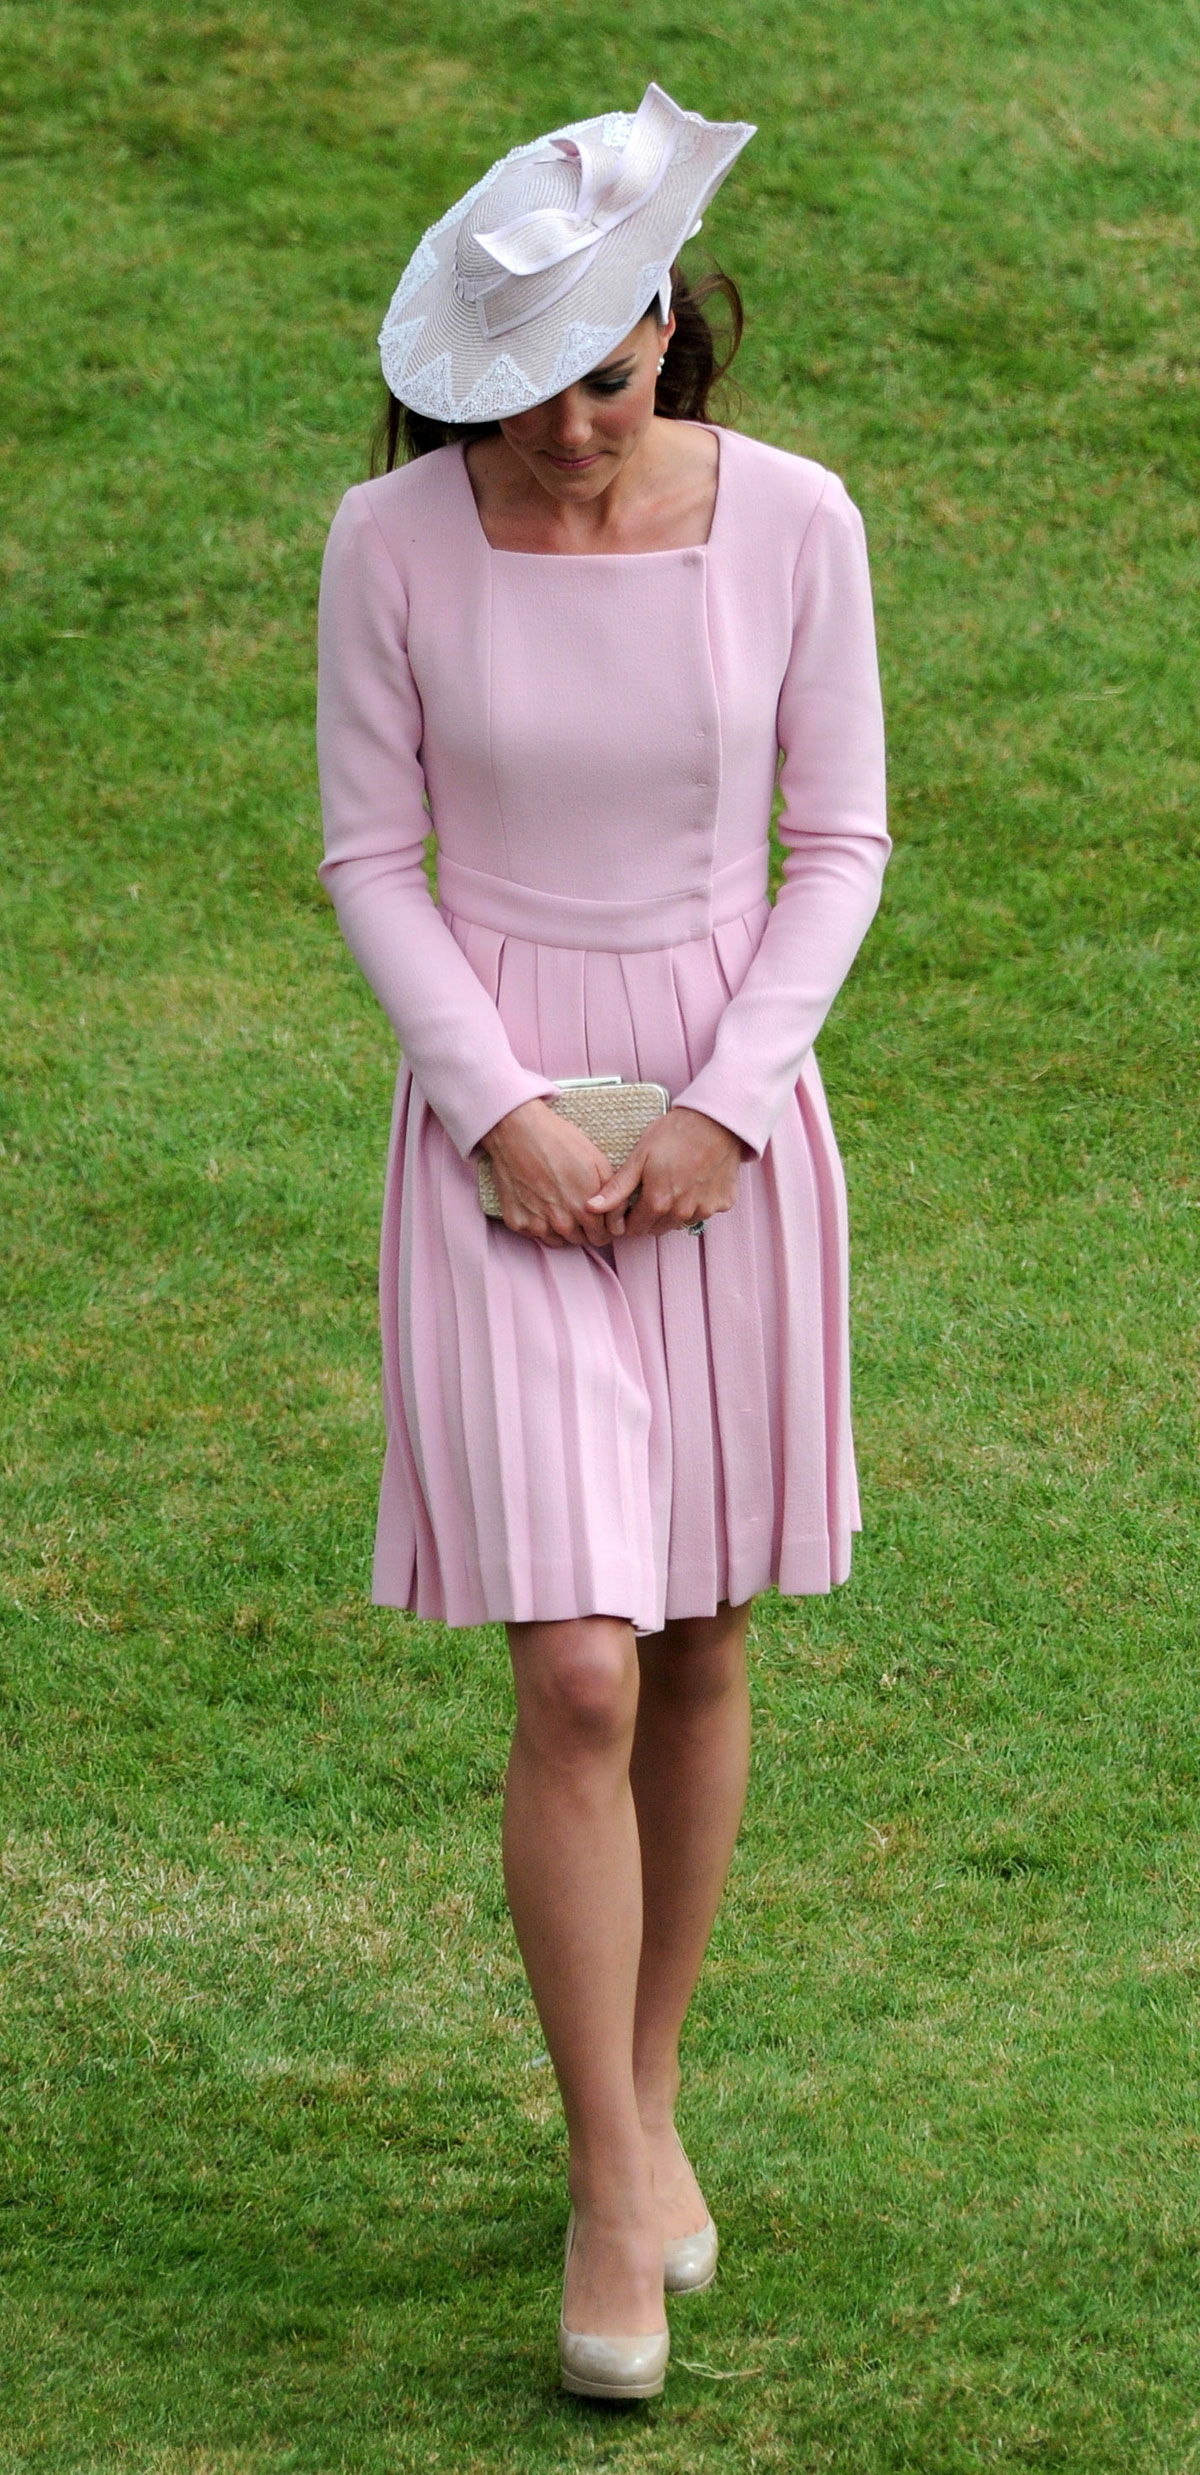 Kate Middleton Attends At Buckingham Palace Garden Party In London Hawtcelebs